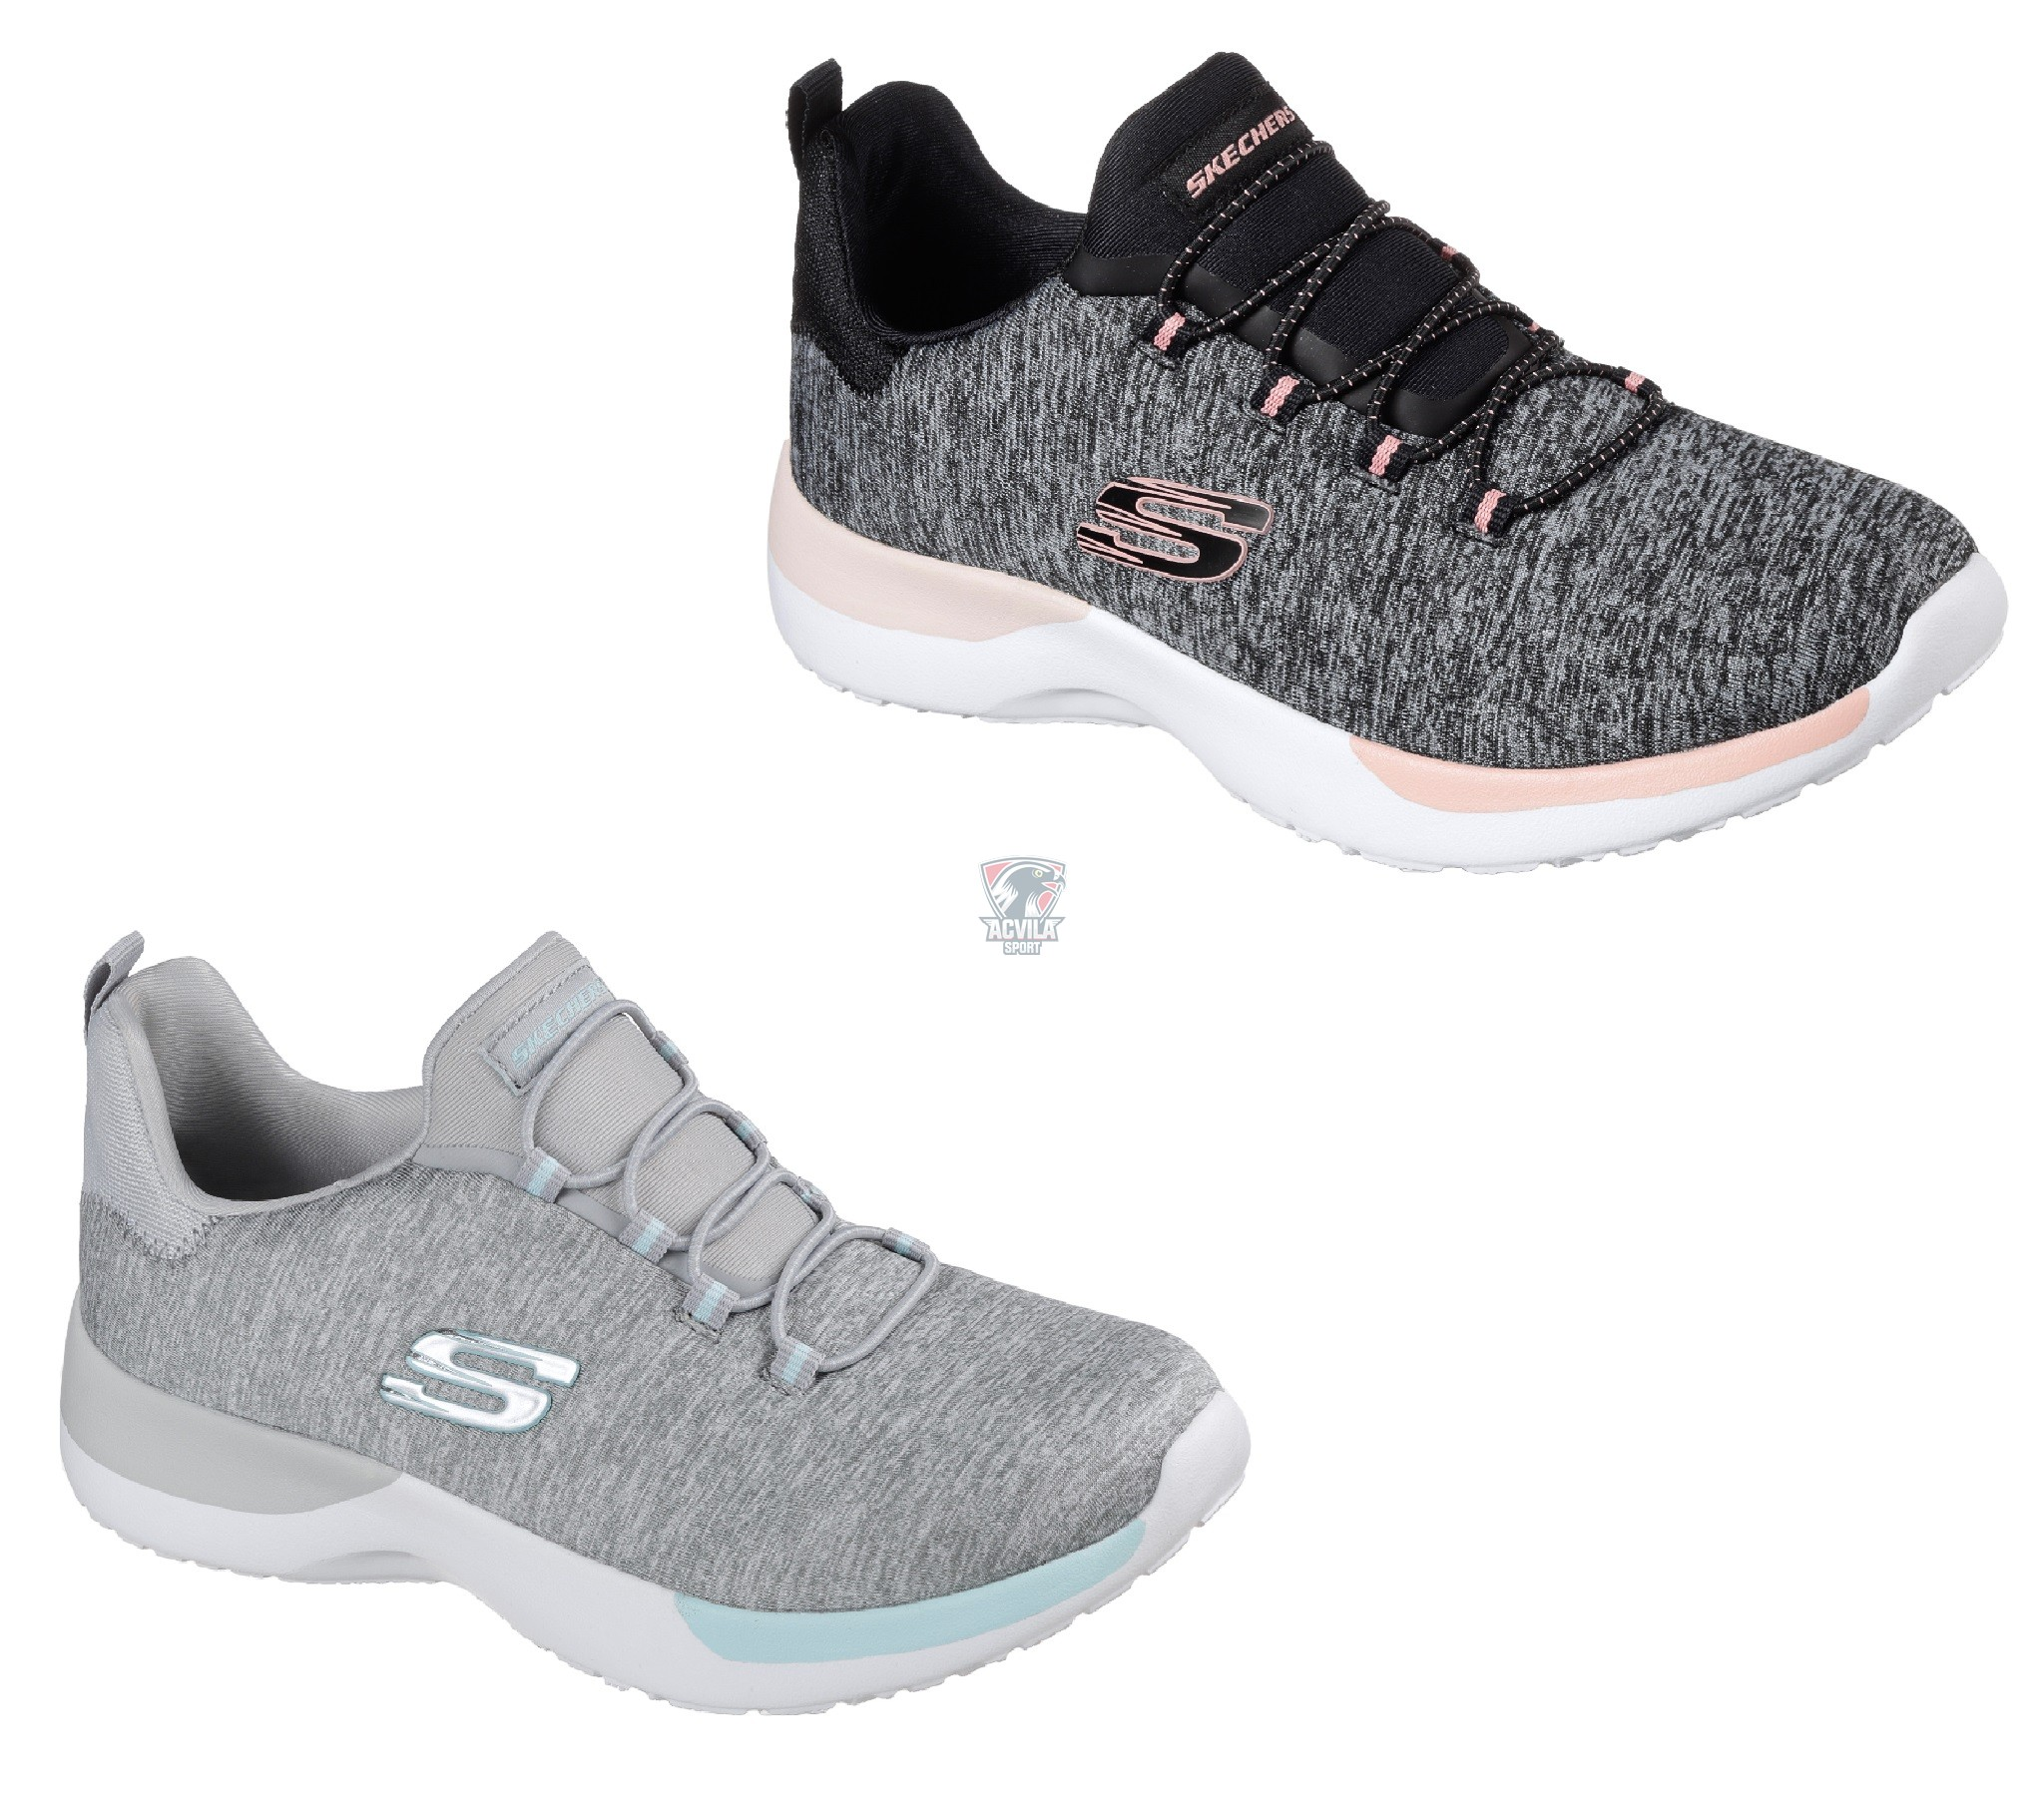 Photo acvilasport - SKECHERS DYNAMIGHT - BREAKTHROUGH